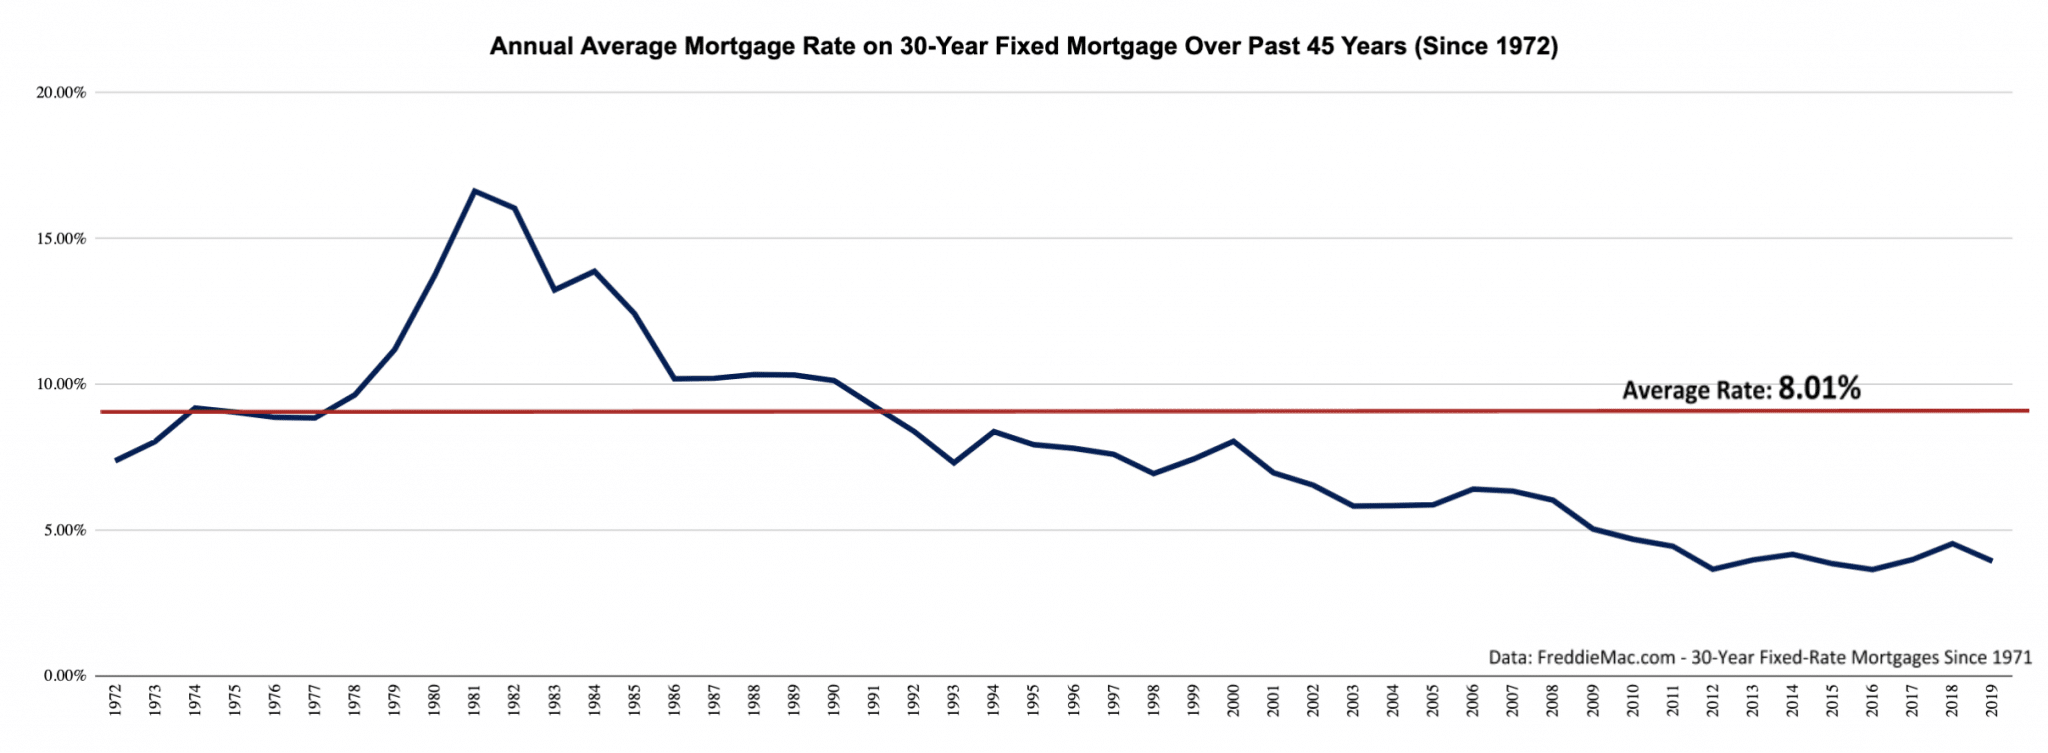 Annual Average Mortgage Rate for 30 Year Fixed Mortgage 1972-2019